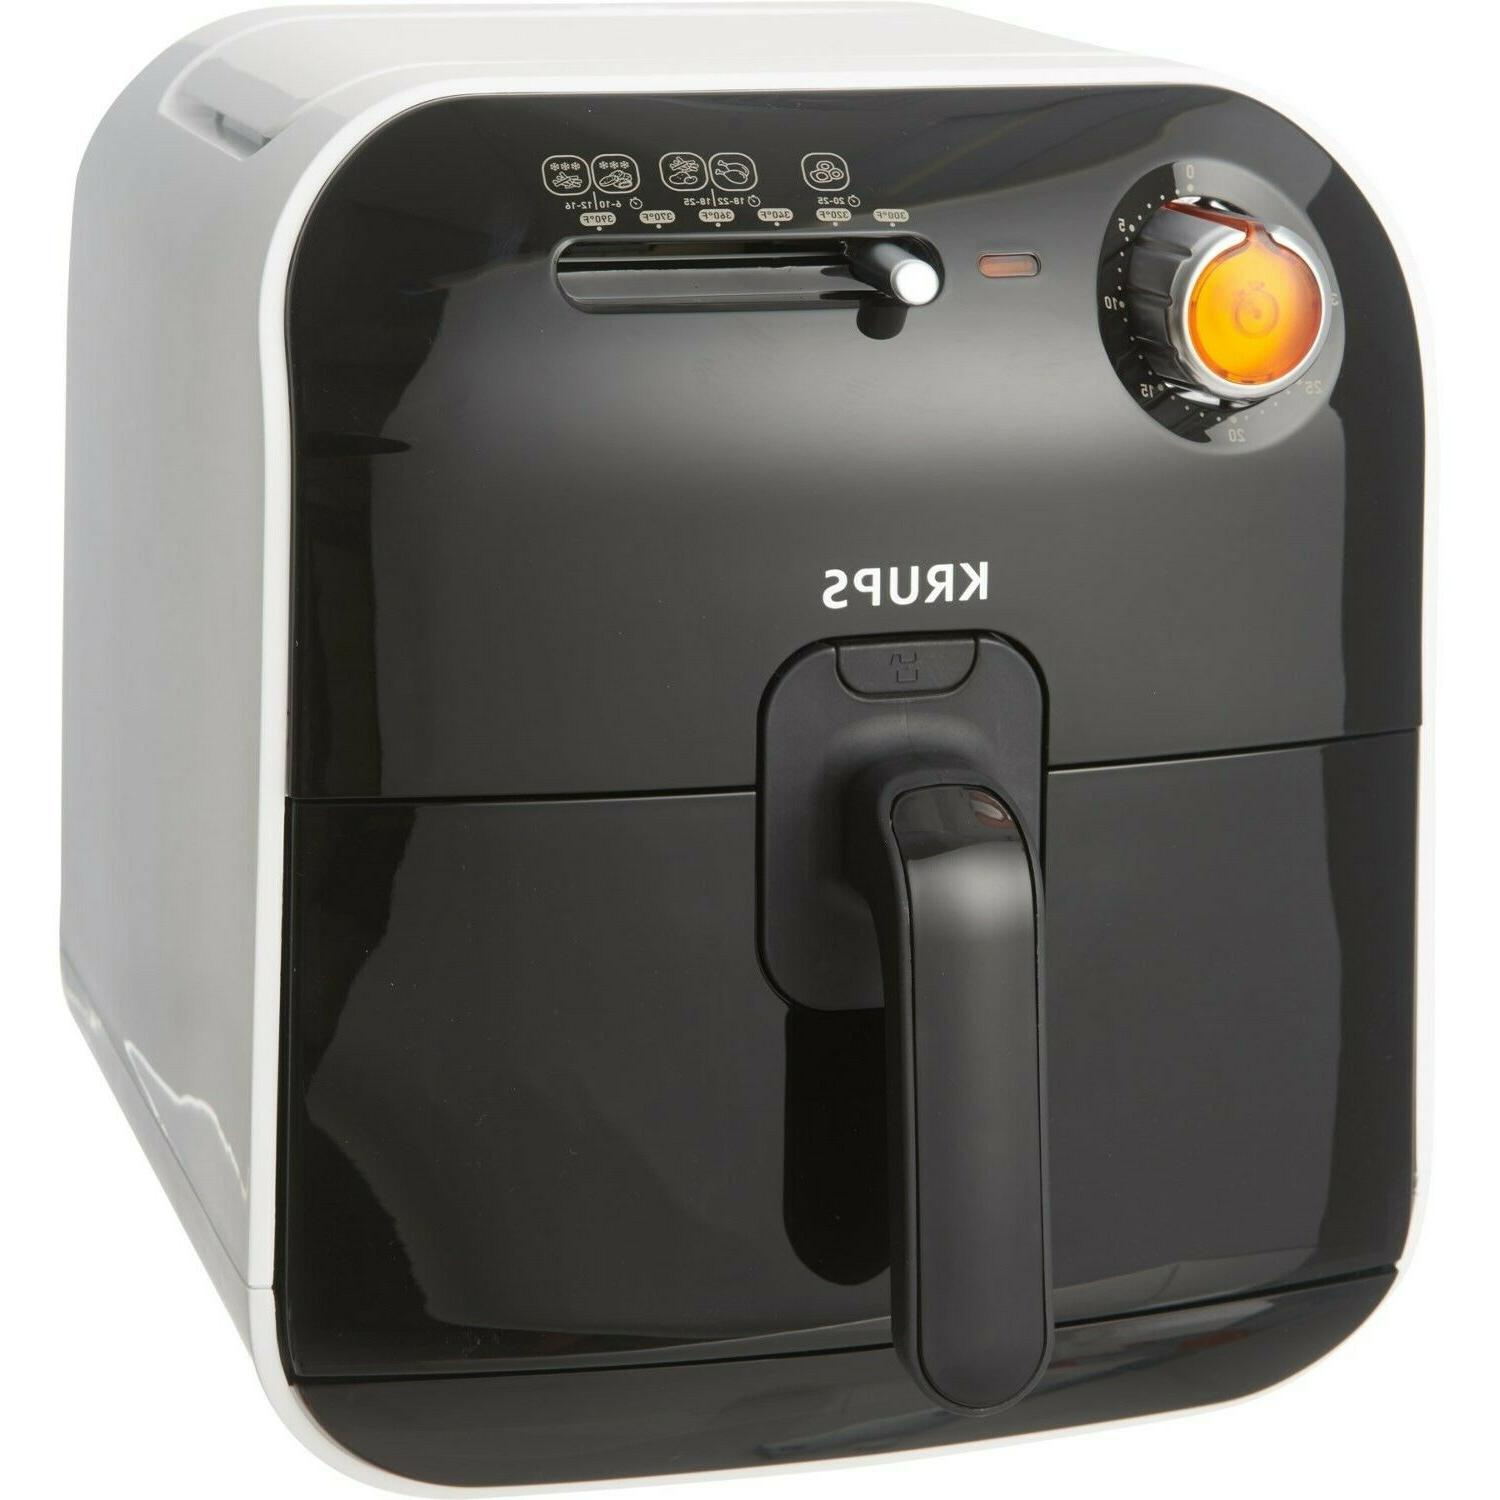 aj1000us air fryer low fat with adjustable